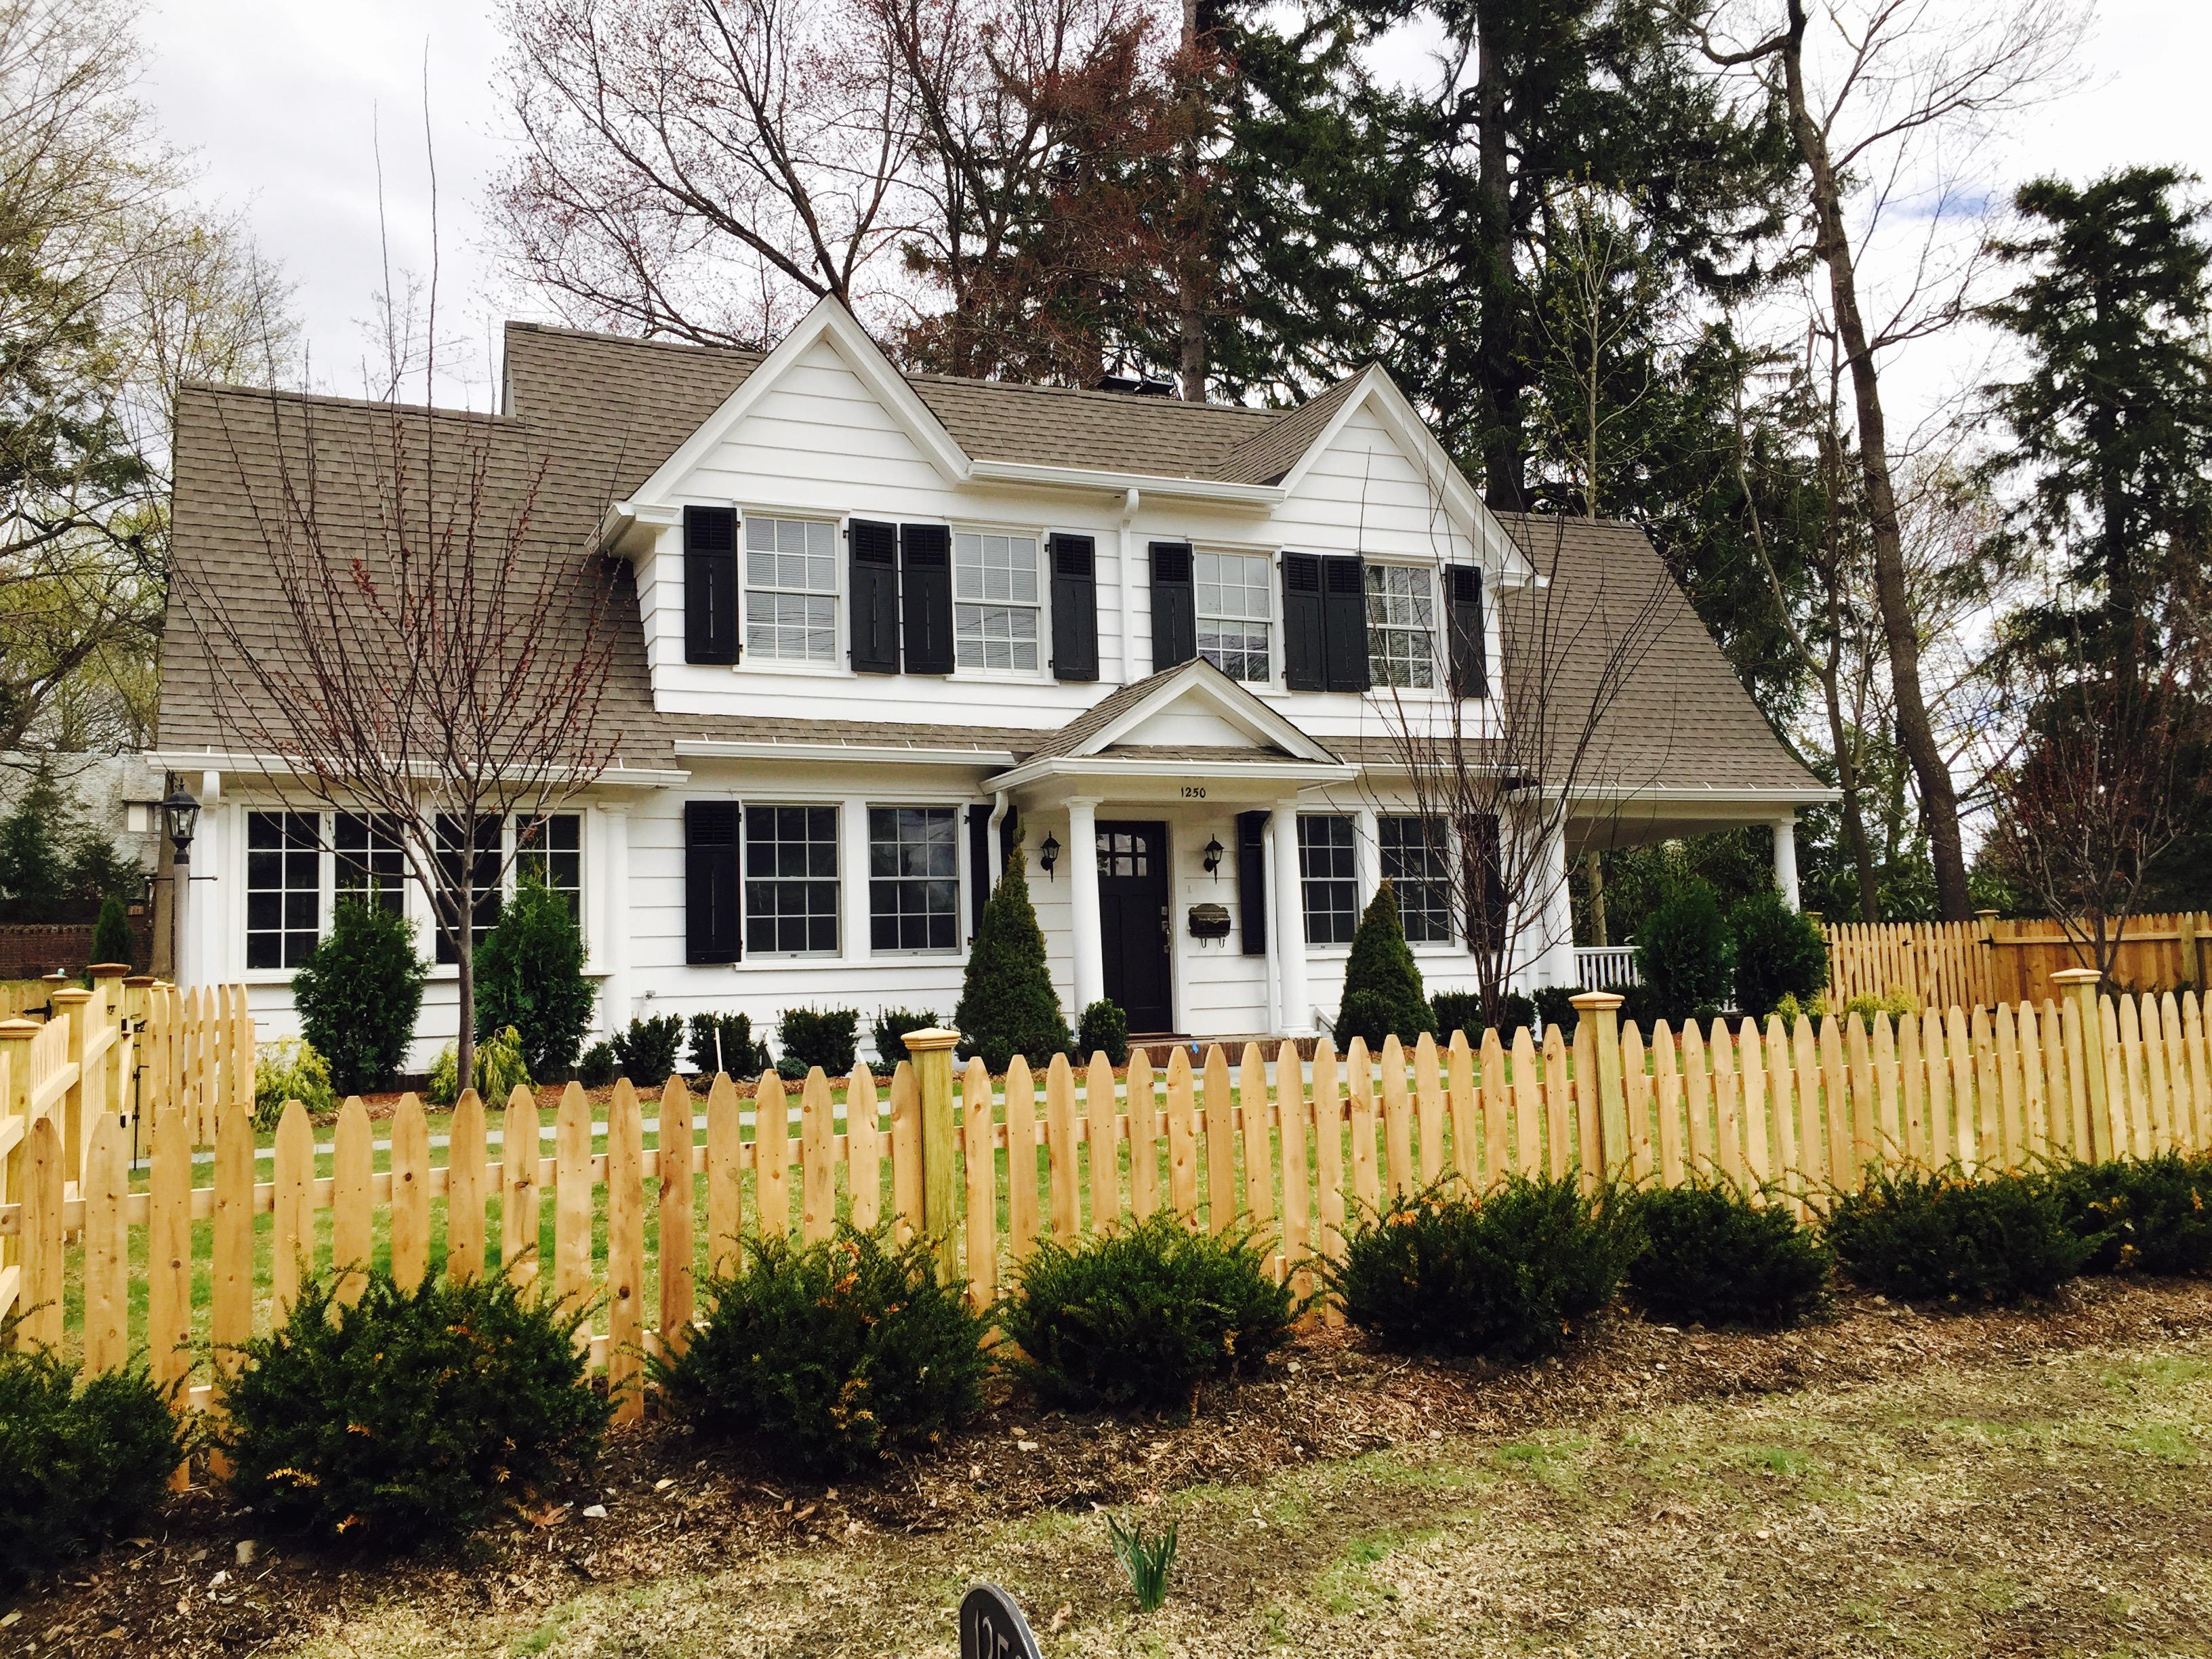 Single Family Home for Sale at Handsomely Renovated Center Hall Colonial 1250 Post Road Scarsdale, New York 10583 United States